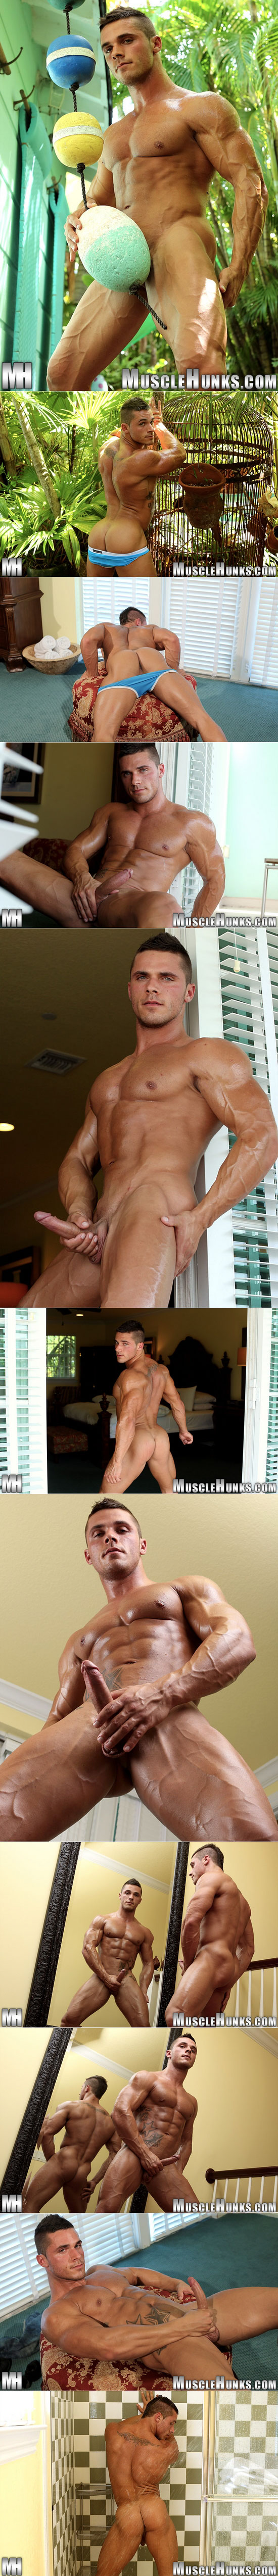 Joey van Damme jerks off for Muscle Hunks